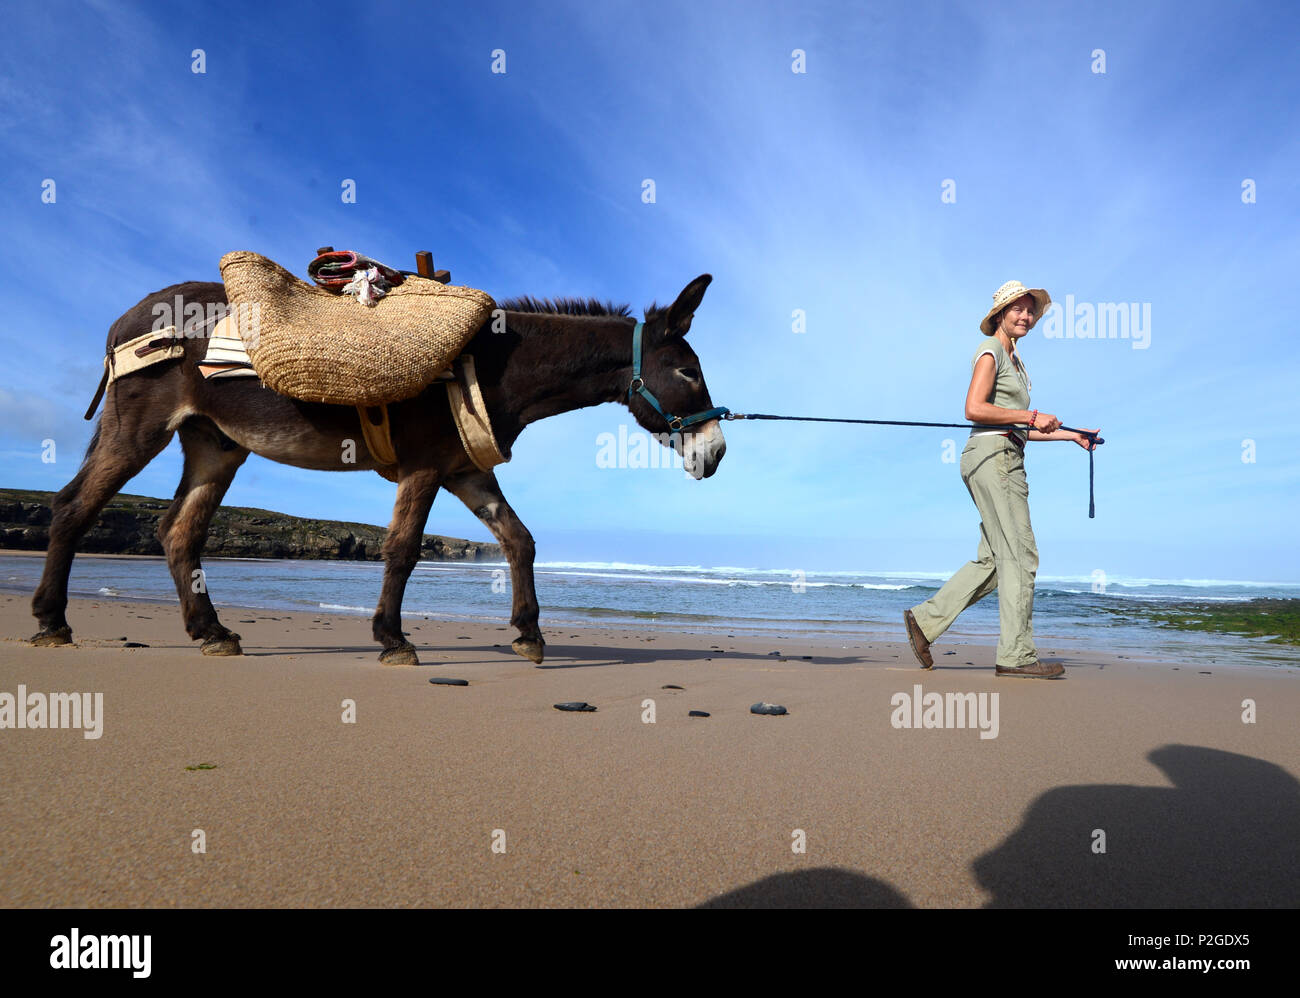 Donkey hiking along the beach of Aljezur with Sofia von Mentzingen and donkey Mocca, Costa Vicentina, Algarve, Portugal - Stock Image